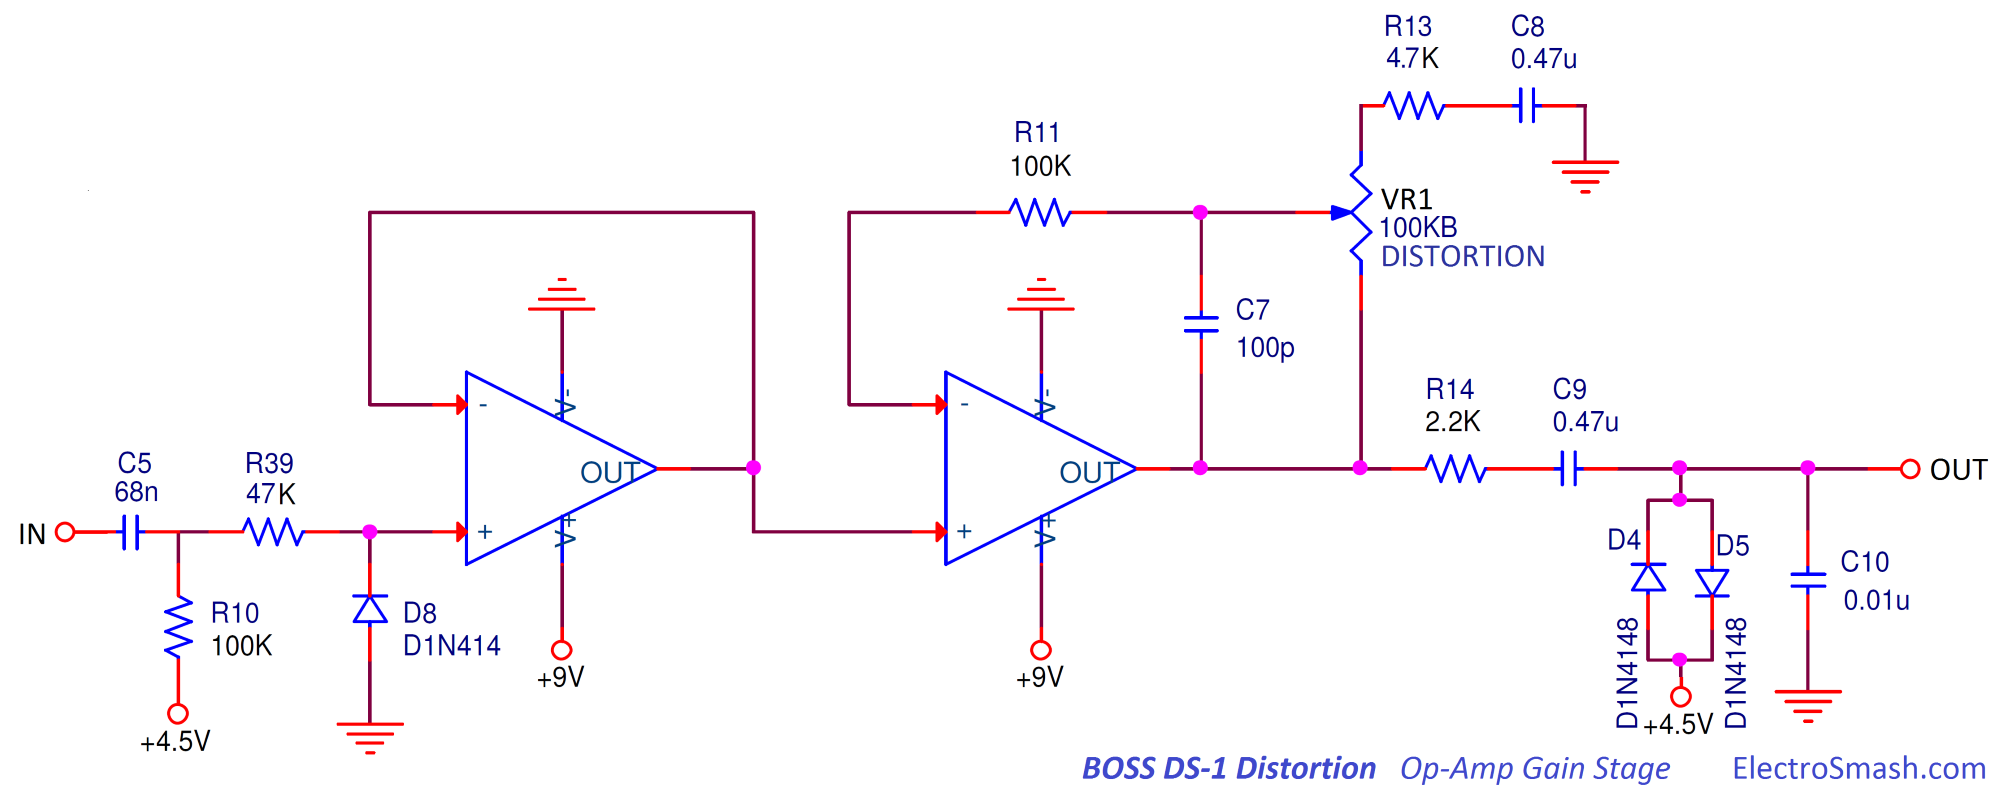 Electrosmash Boss Ds1 Distortion Analysis How To Build Op Amp Booster Designs Pdf Gain Stage